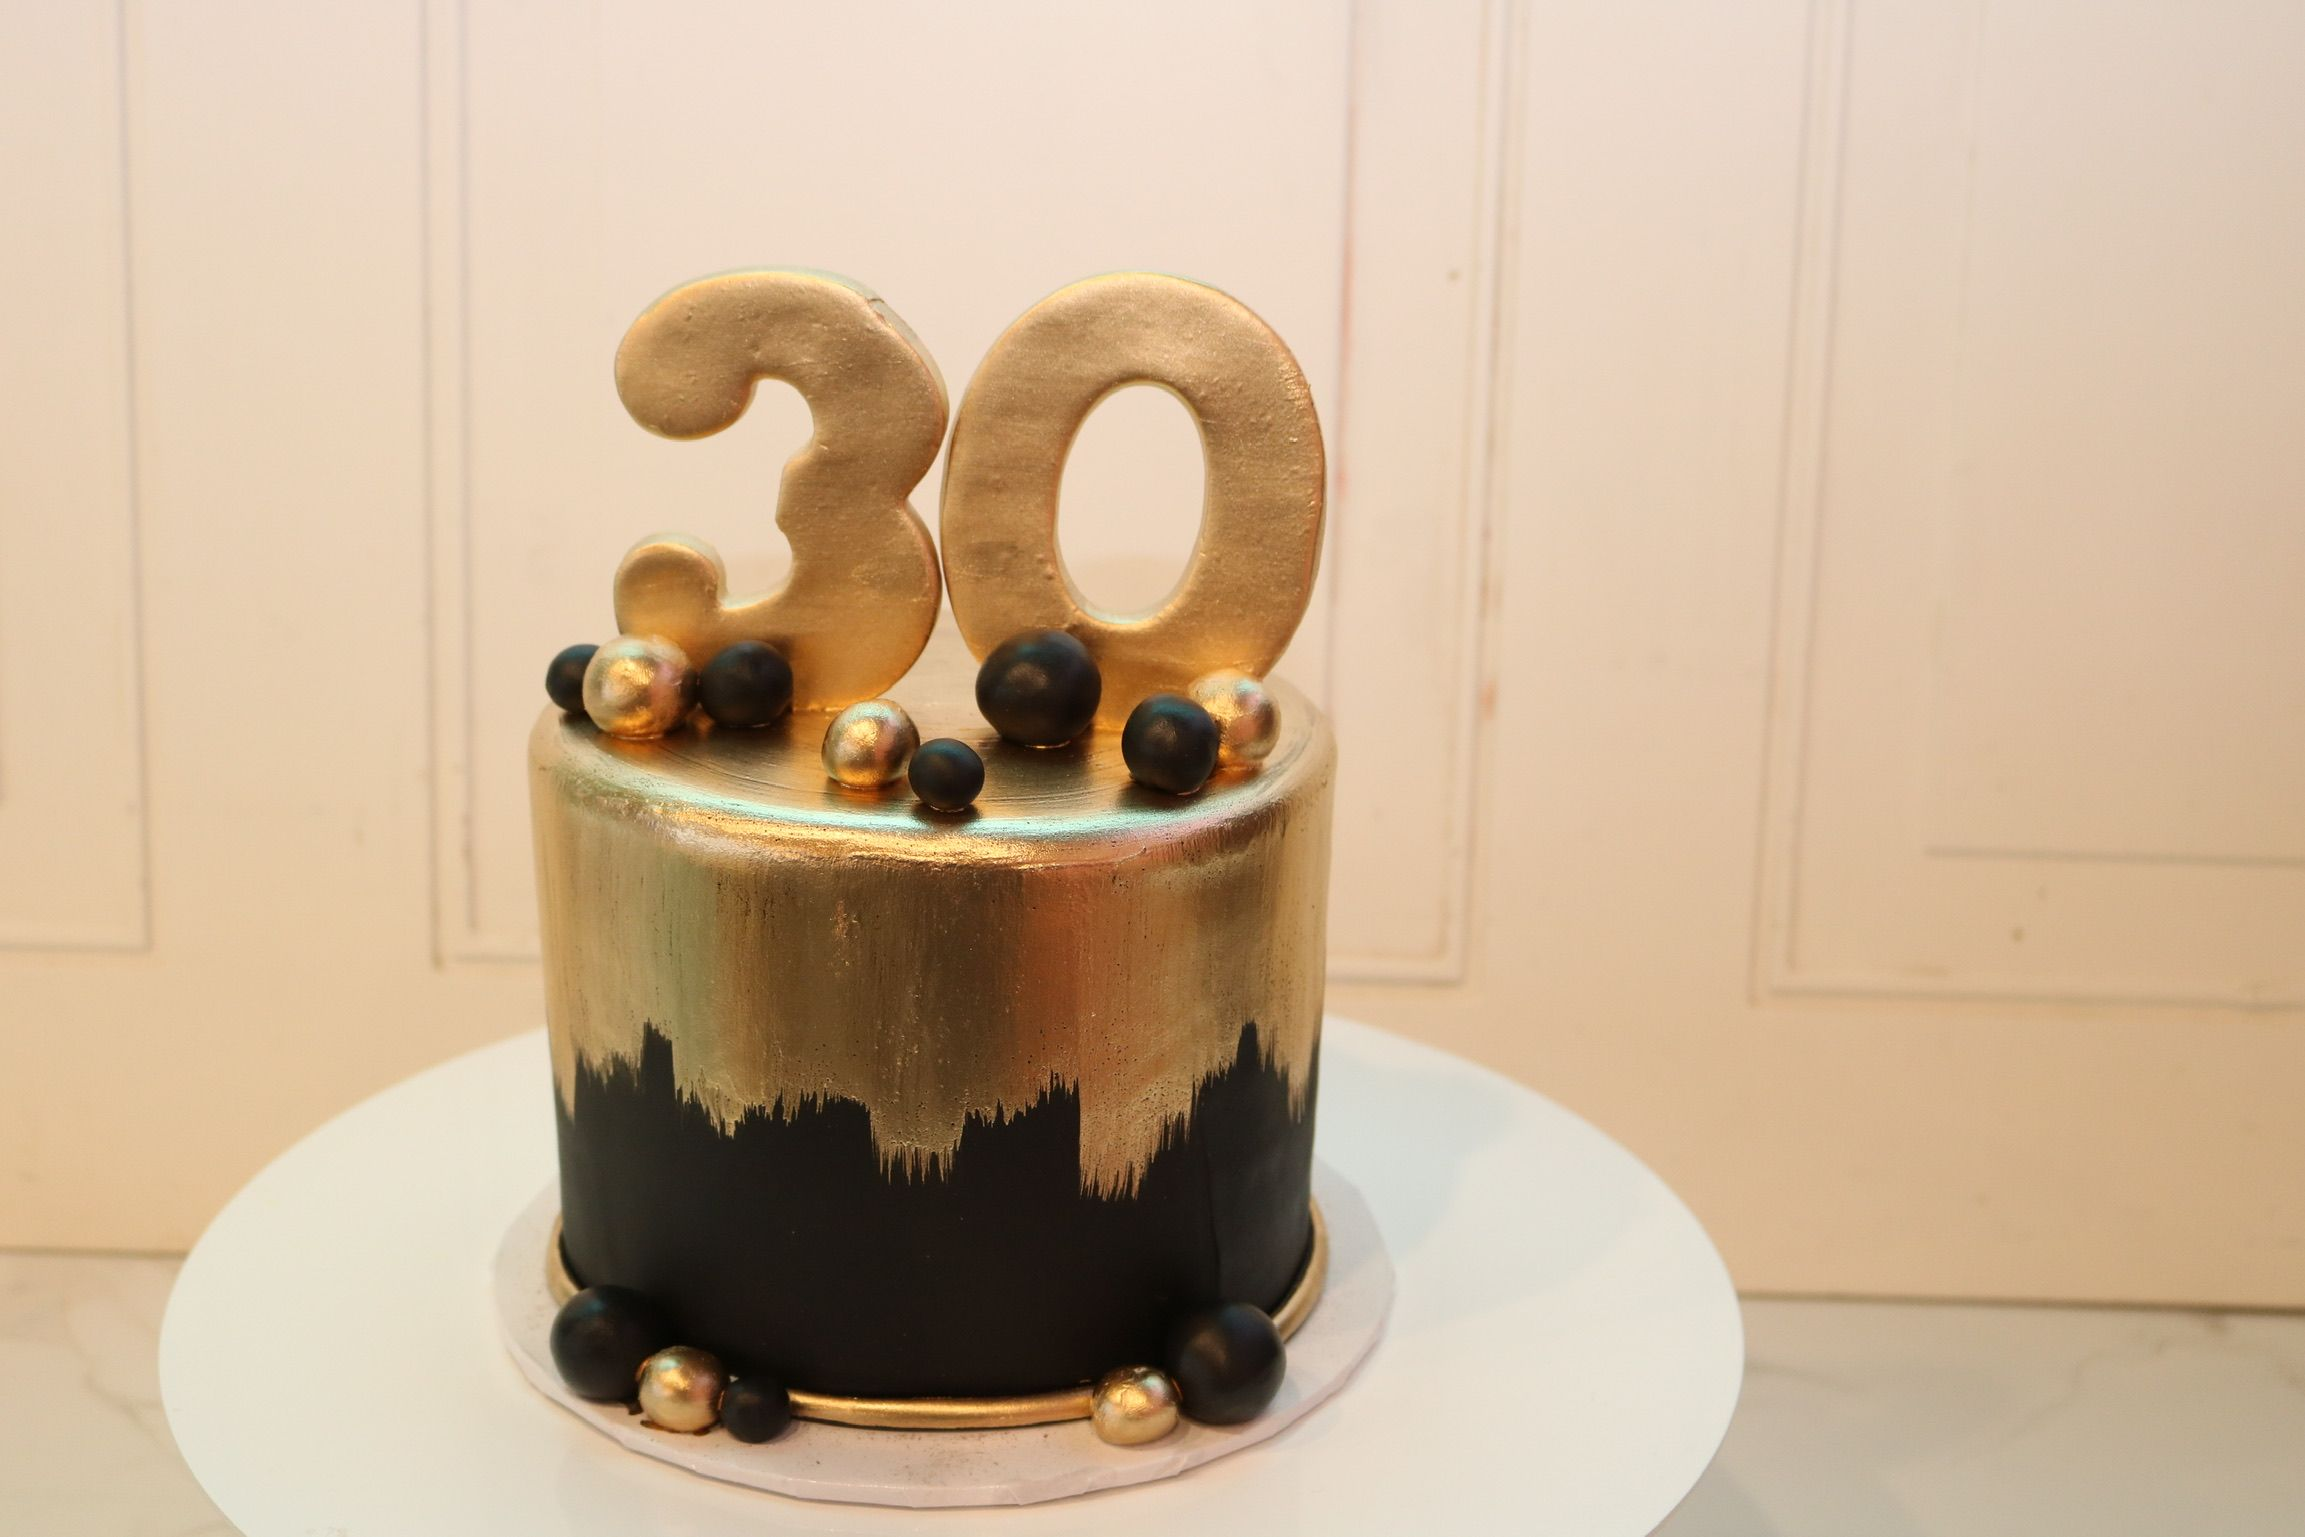 Black And Gold 30th Birthday Cake By 3 Sweet Girls Cakery Black